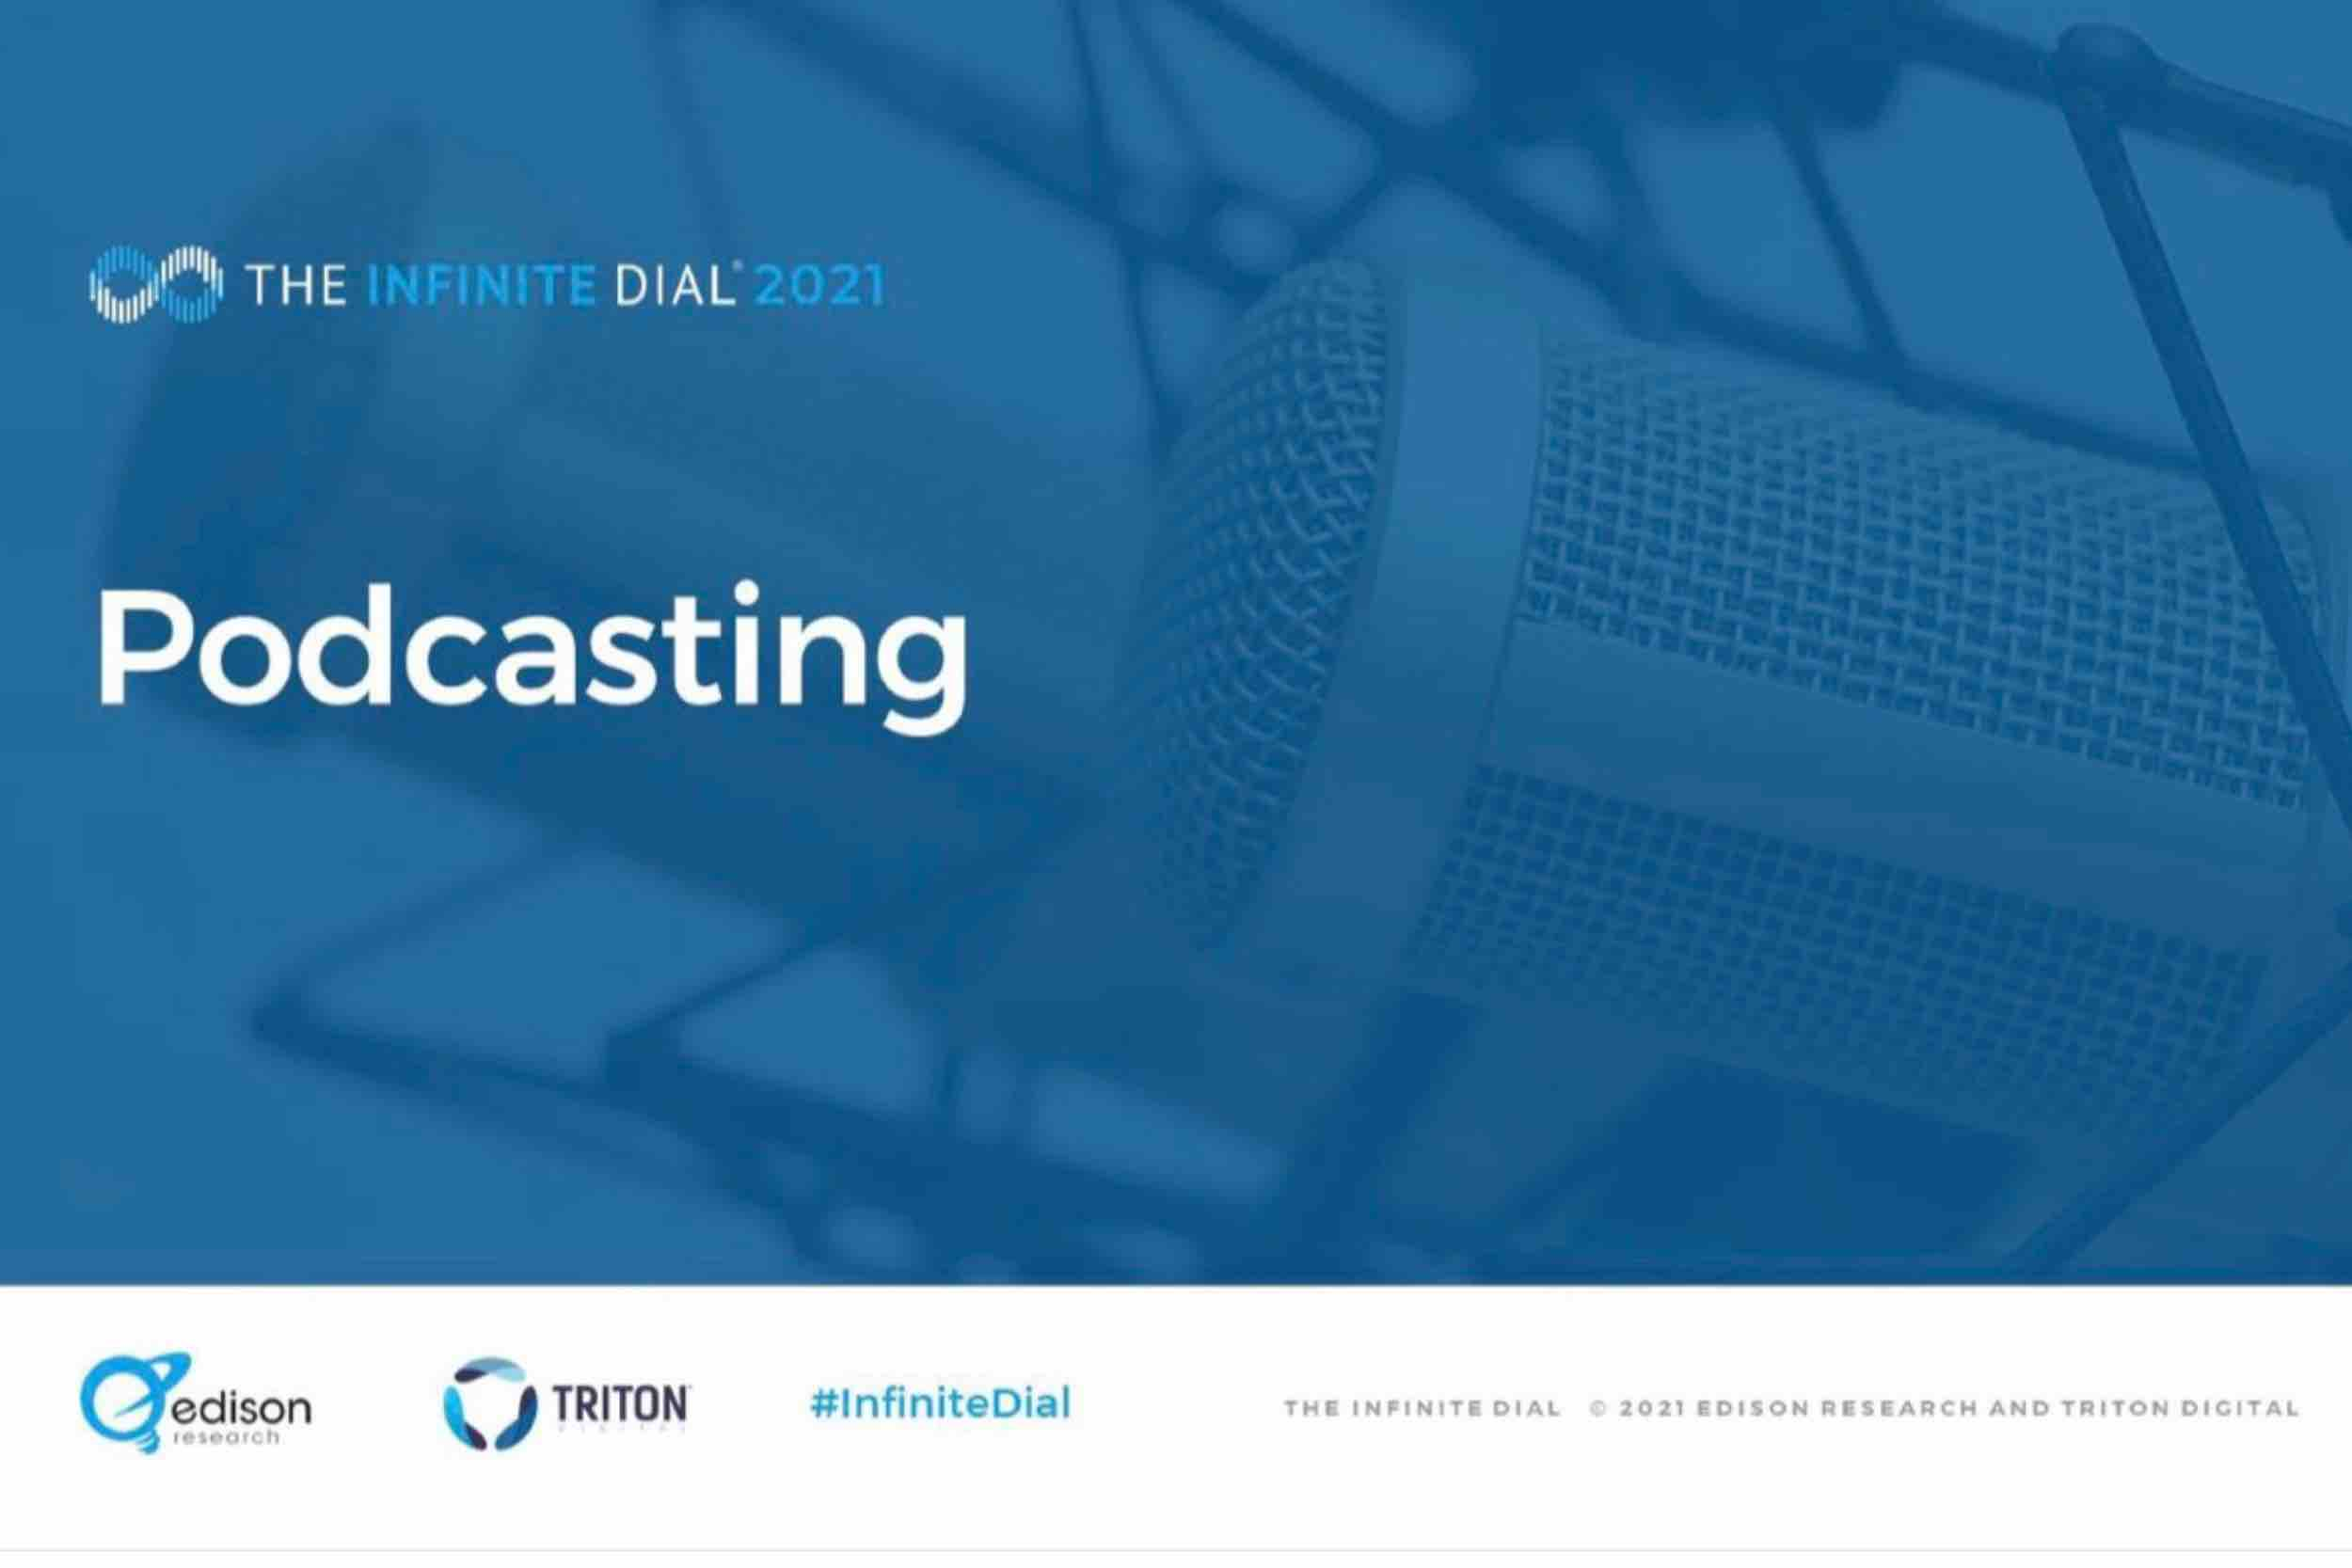 Unpacking Podcasting's Growth Seen In Edison's Infinite Dial 2021